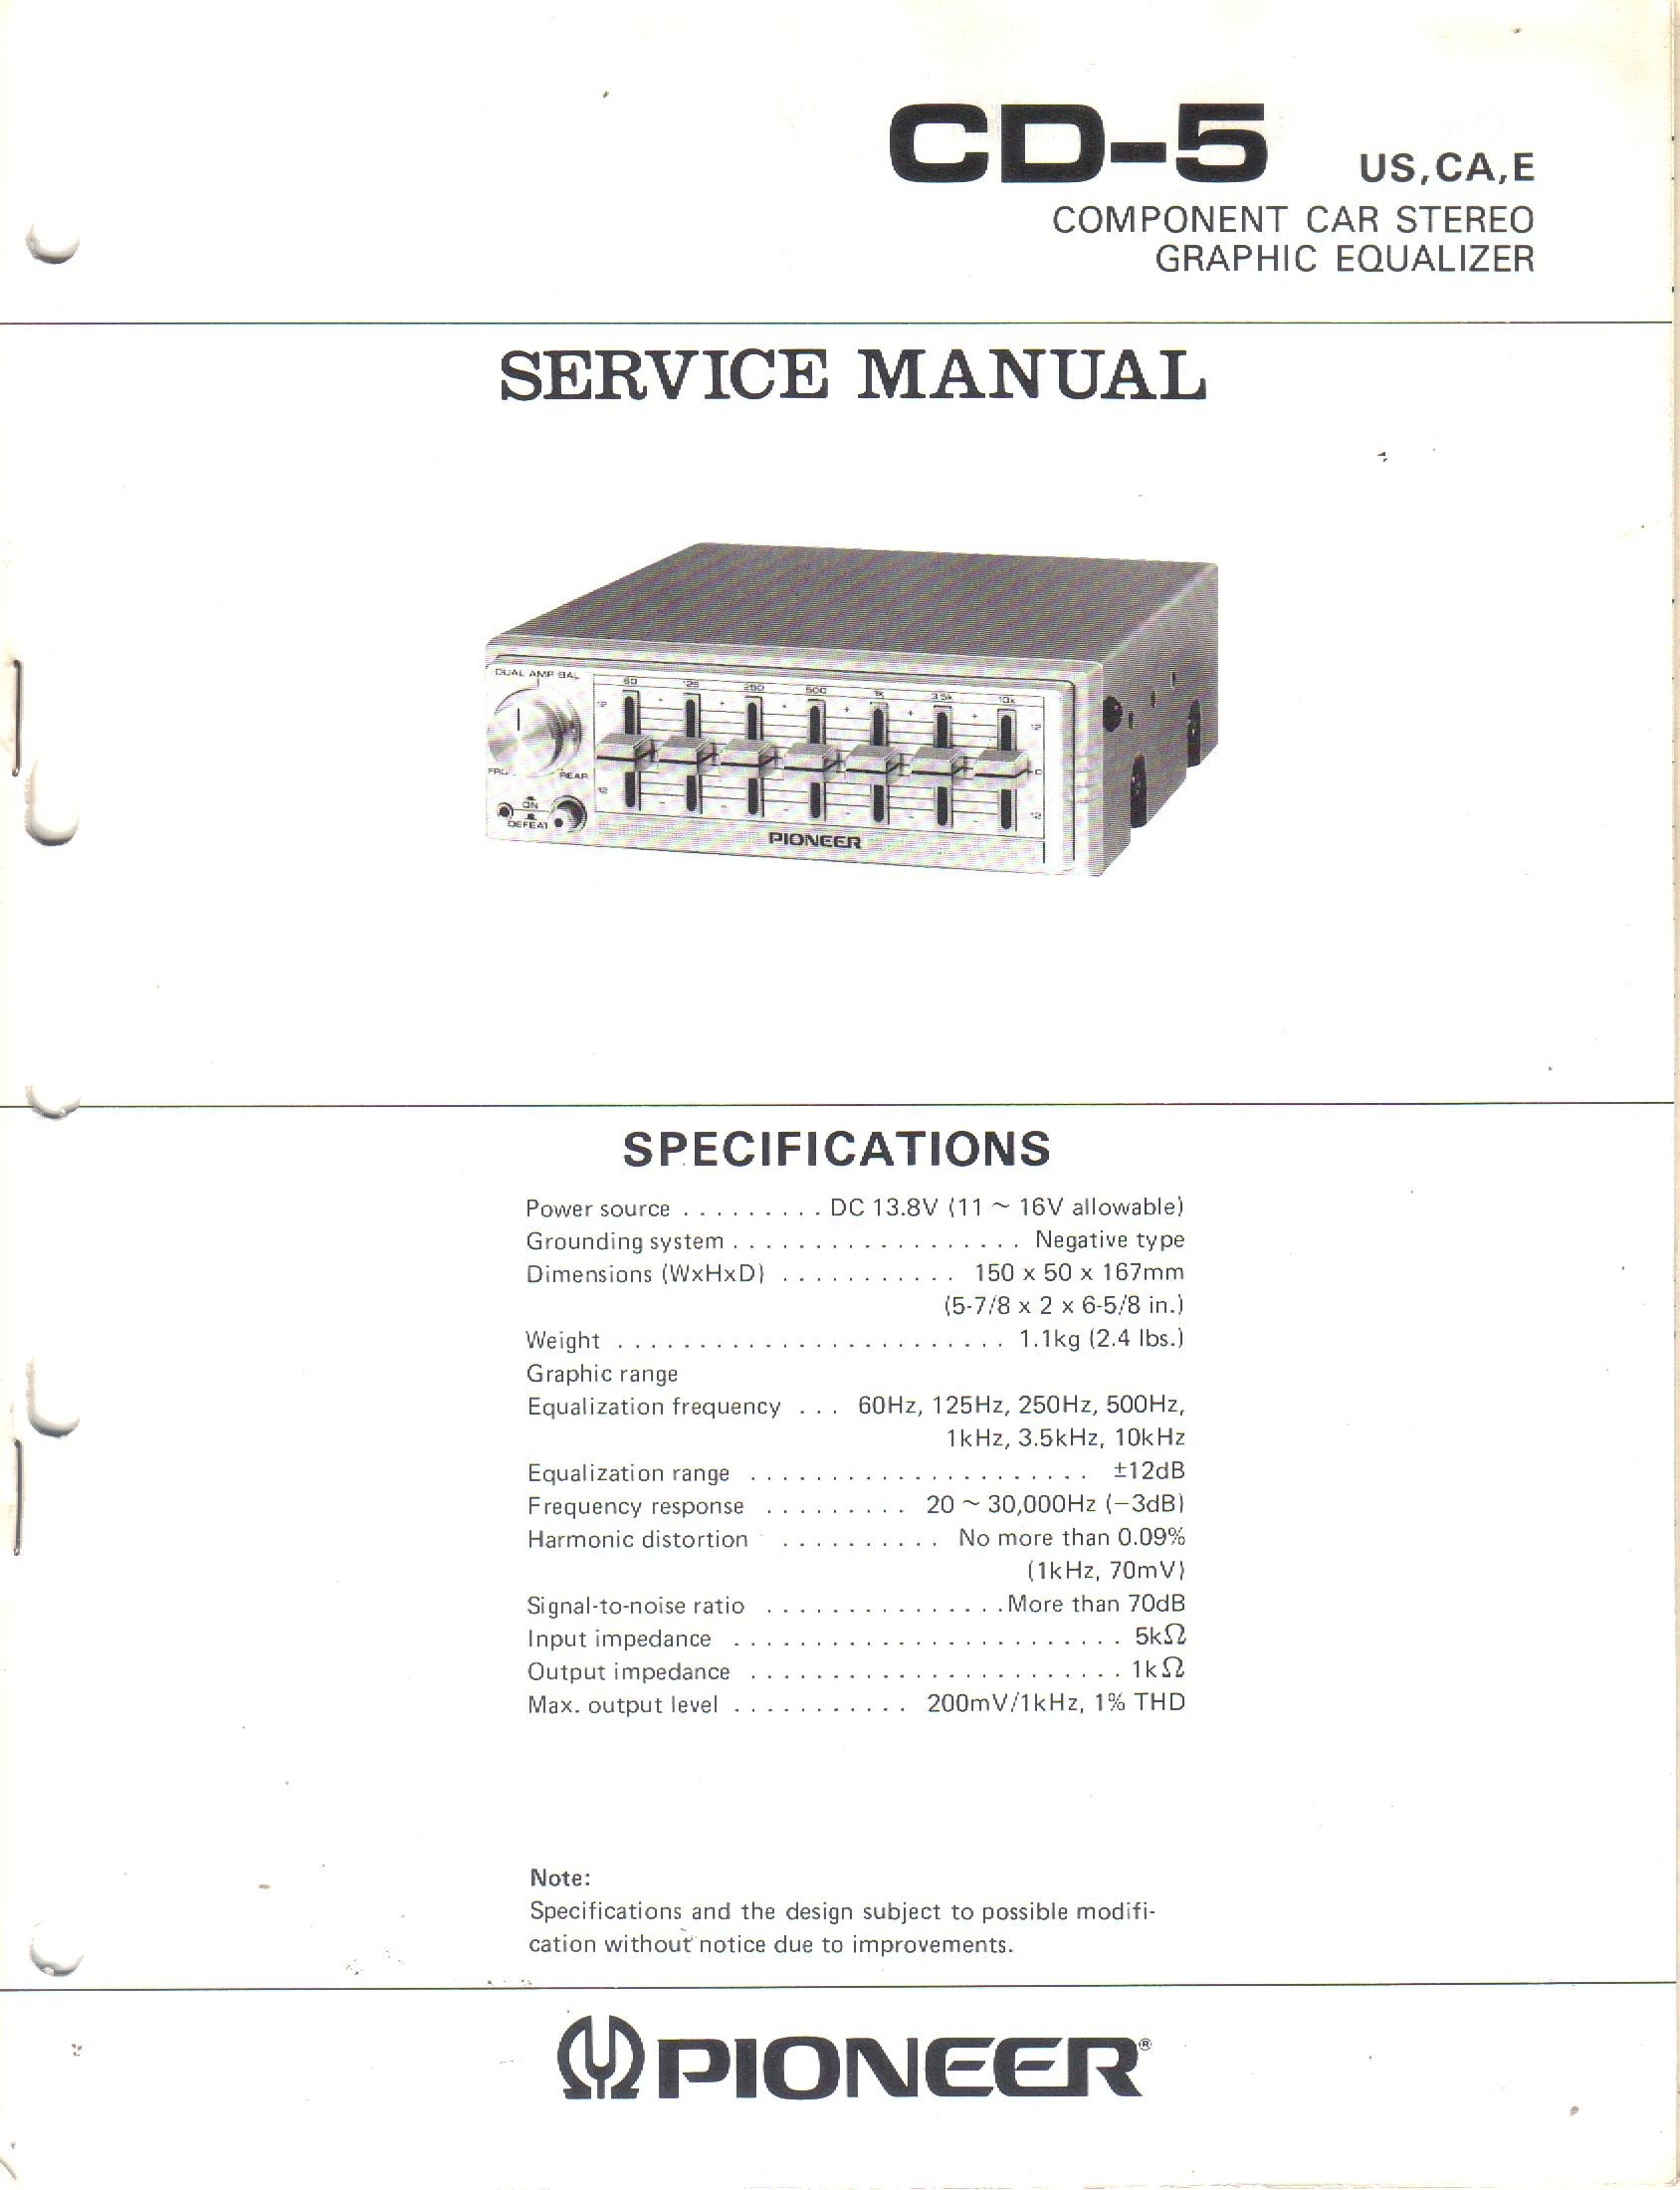 Service Manual Parts List Schematic Wiring Diagram For Pioneer Cd 5 Component Car Stereo Graphic Equalizer Electronic Corp